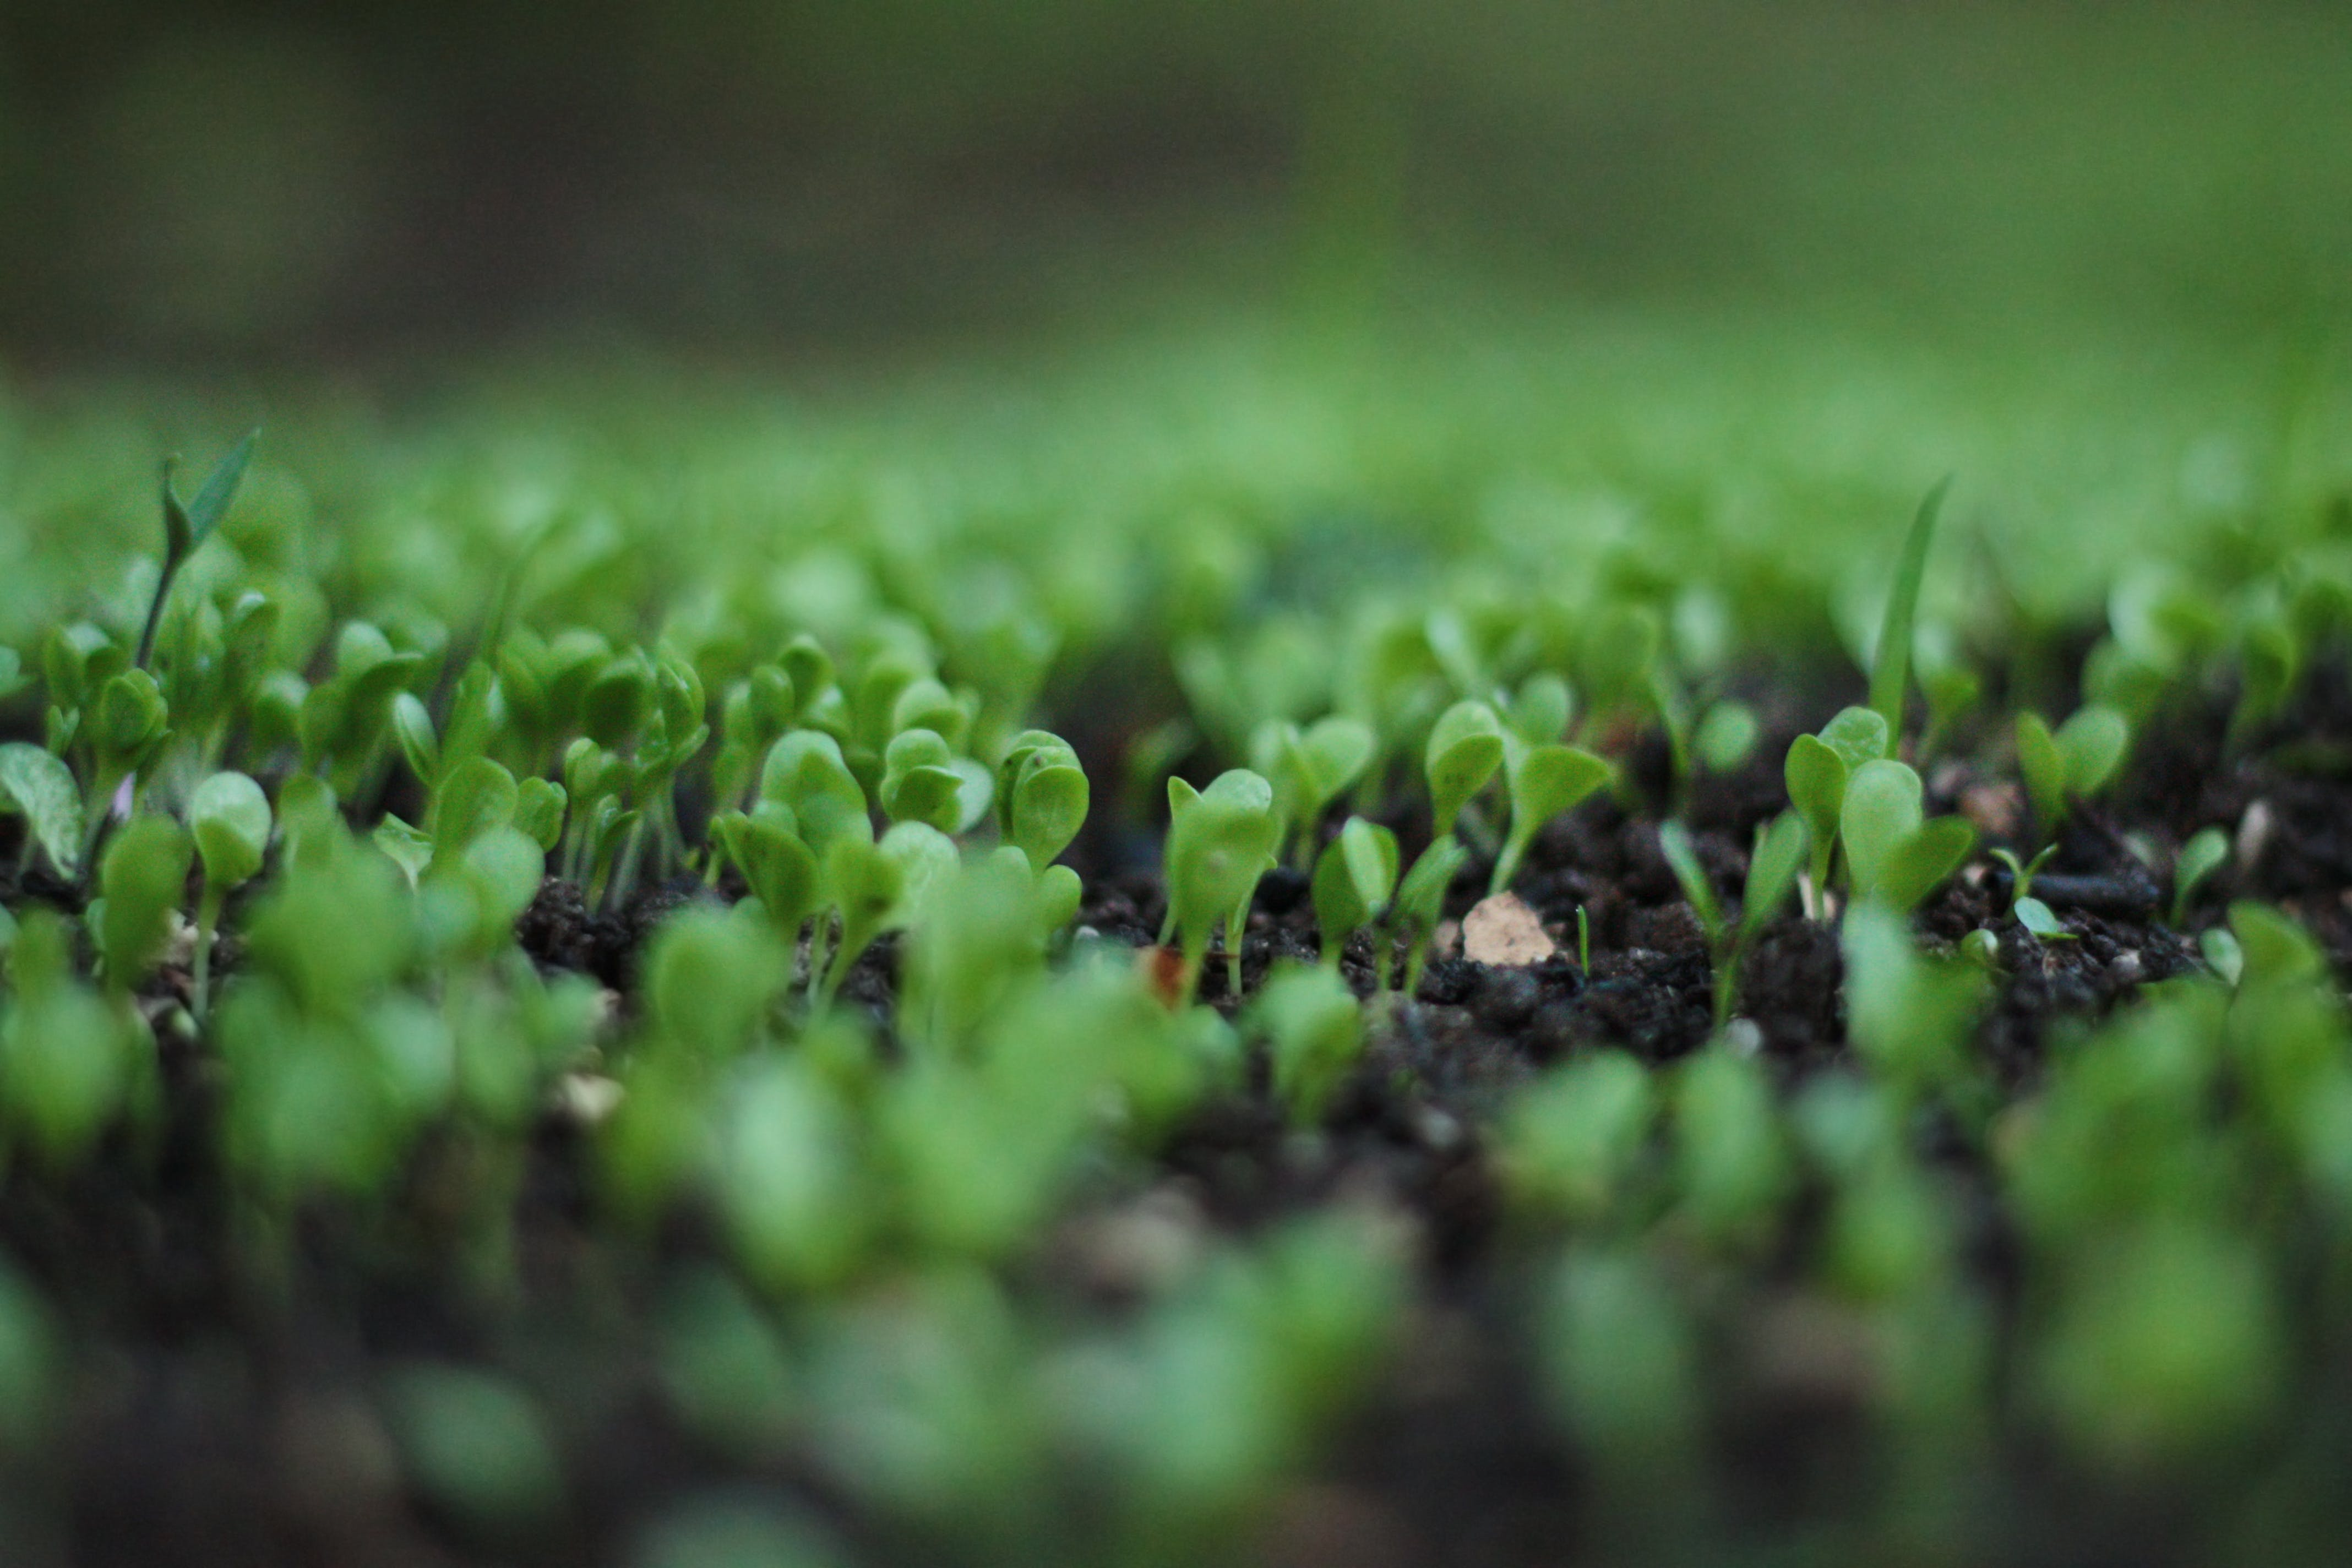 Green Leafed Plant Bokeh Photography